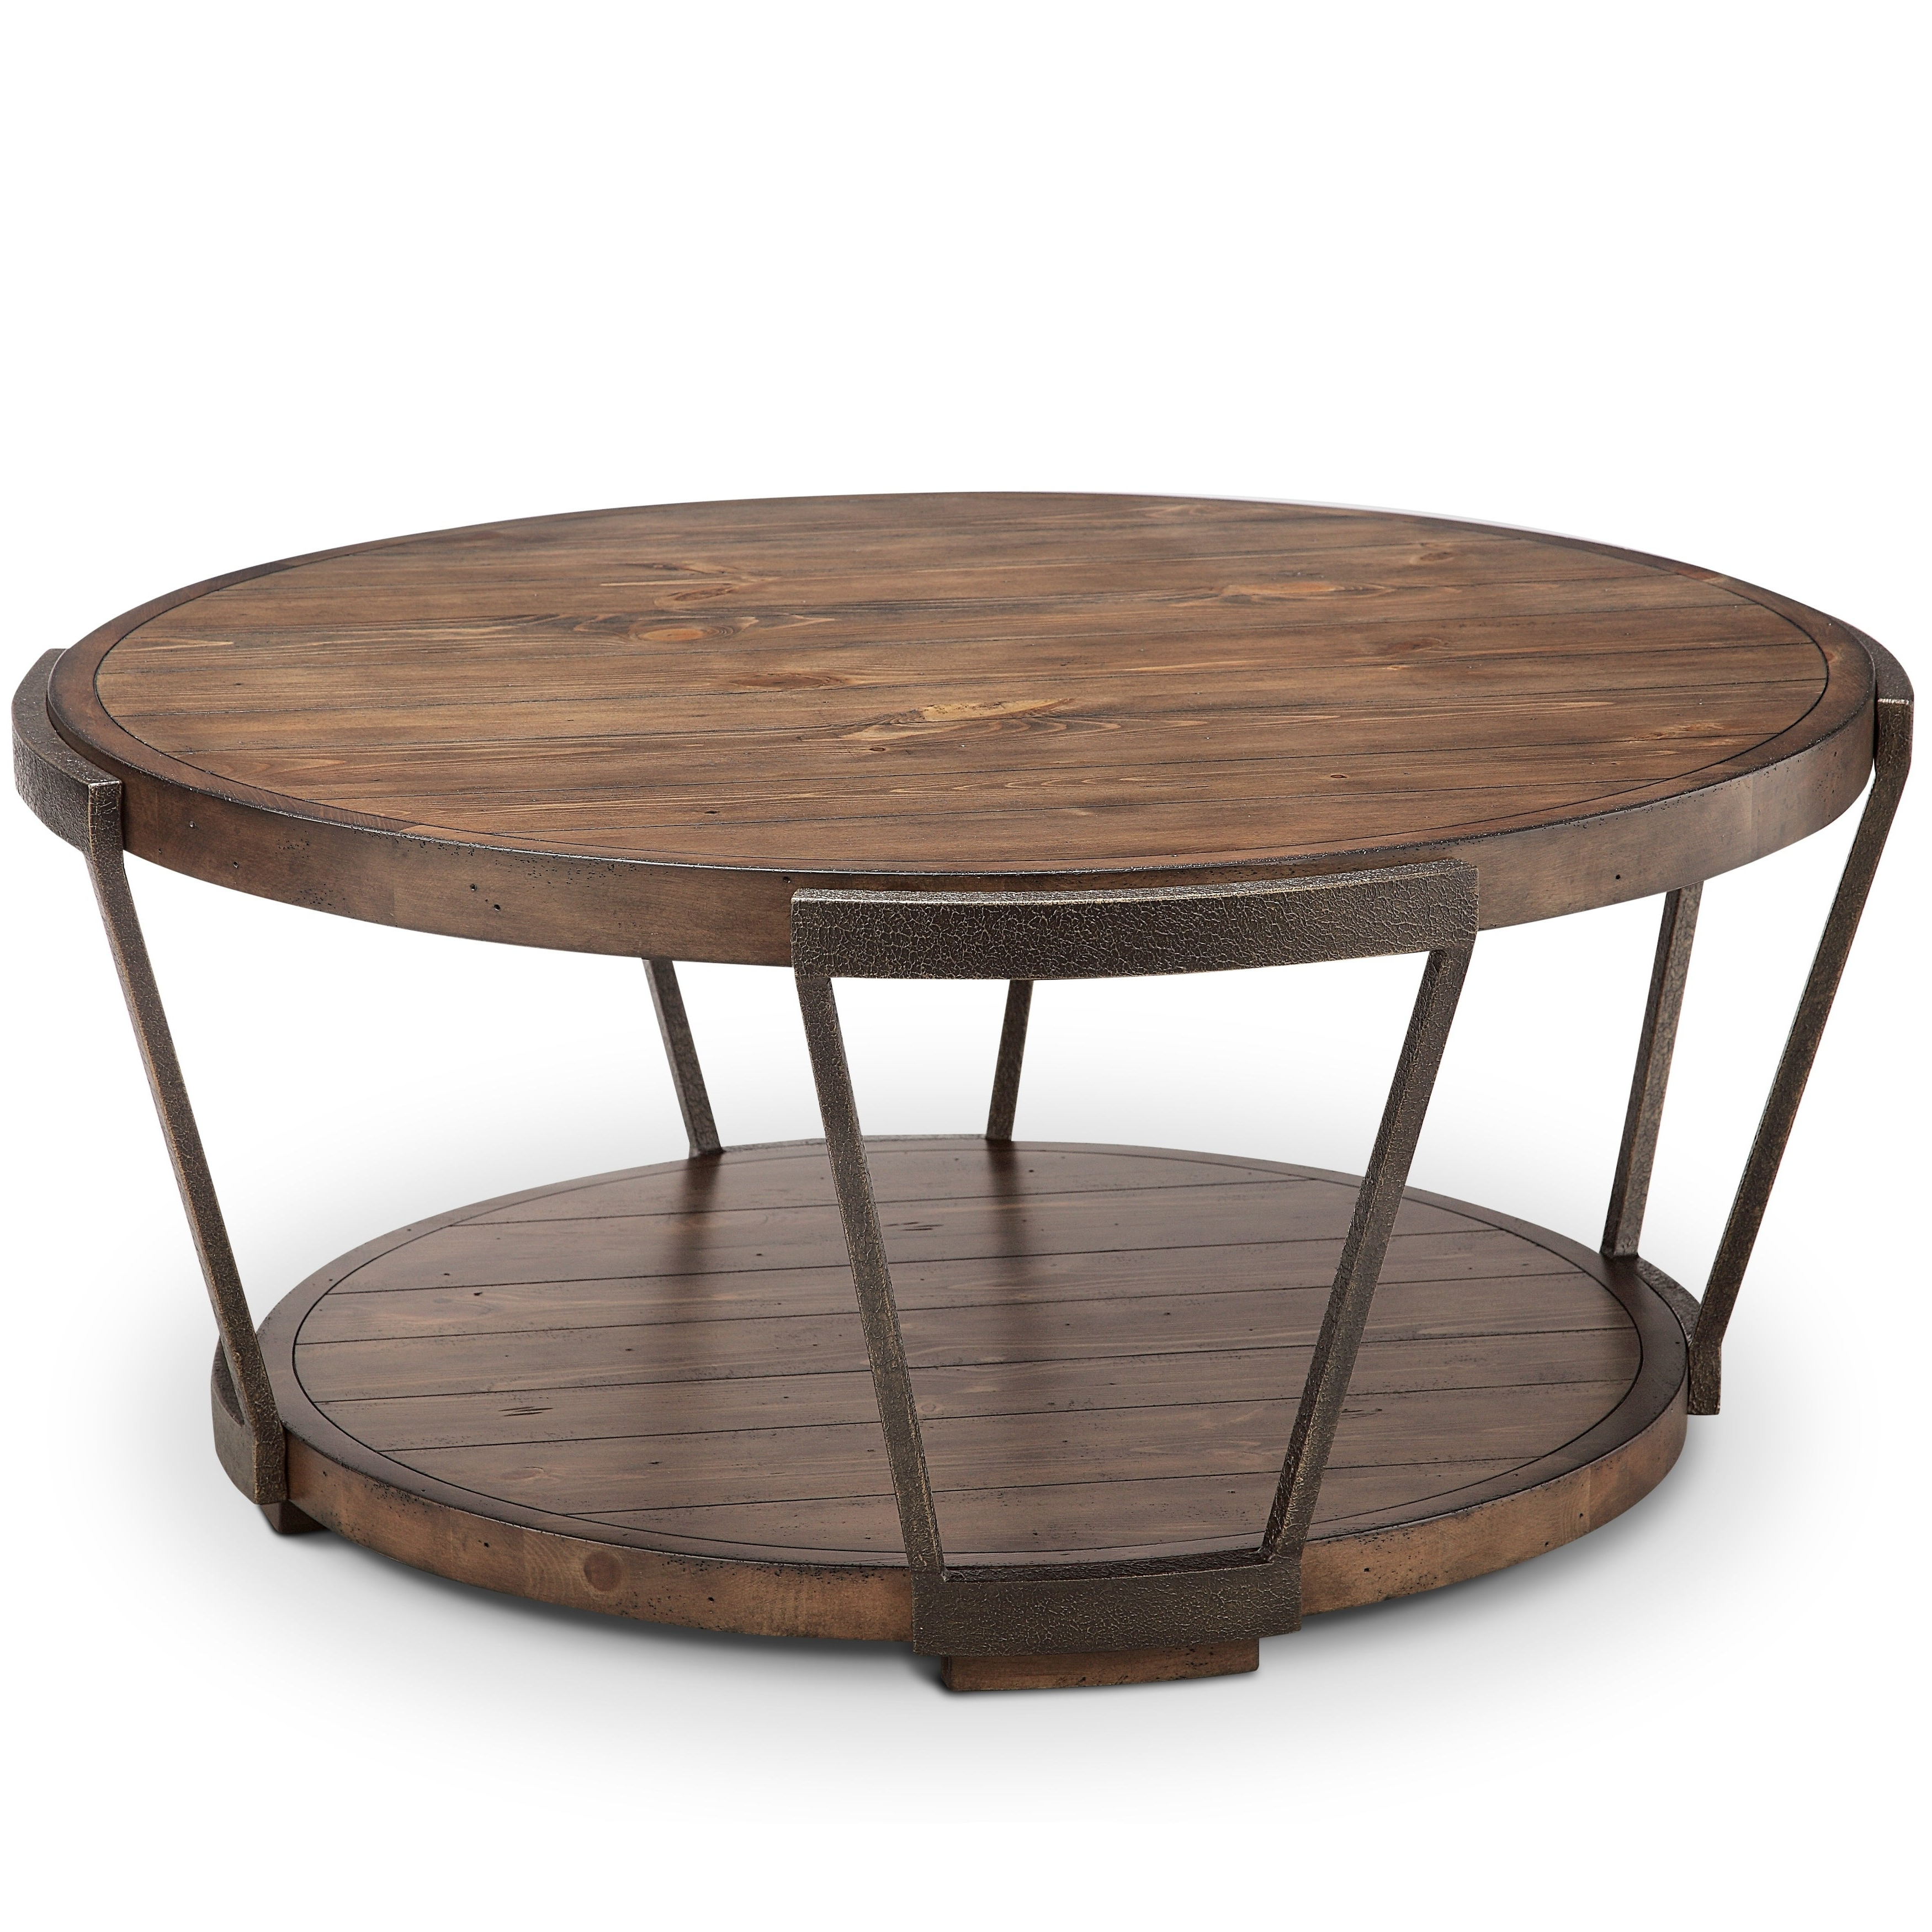 Yukon Industrial Bourbon And Aged Iron Round Coffee Table With Casters Throughout Preferred Burnham Reclaimed Wood And Iron Round Coffee Tables (View 20 of 20)